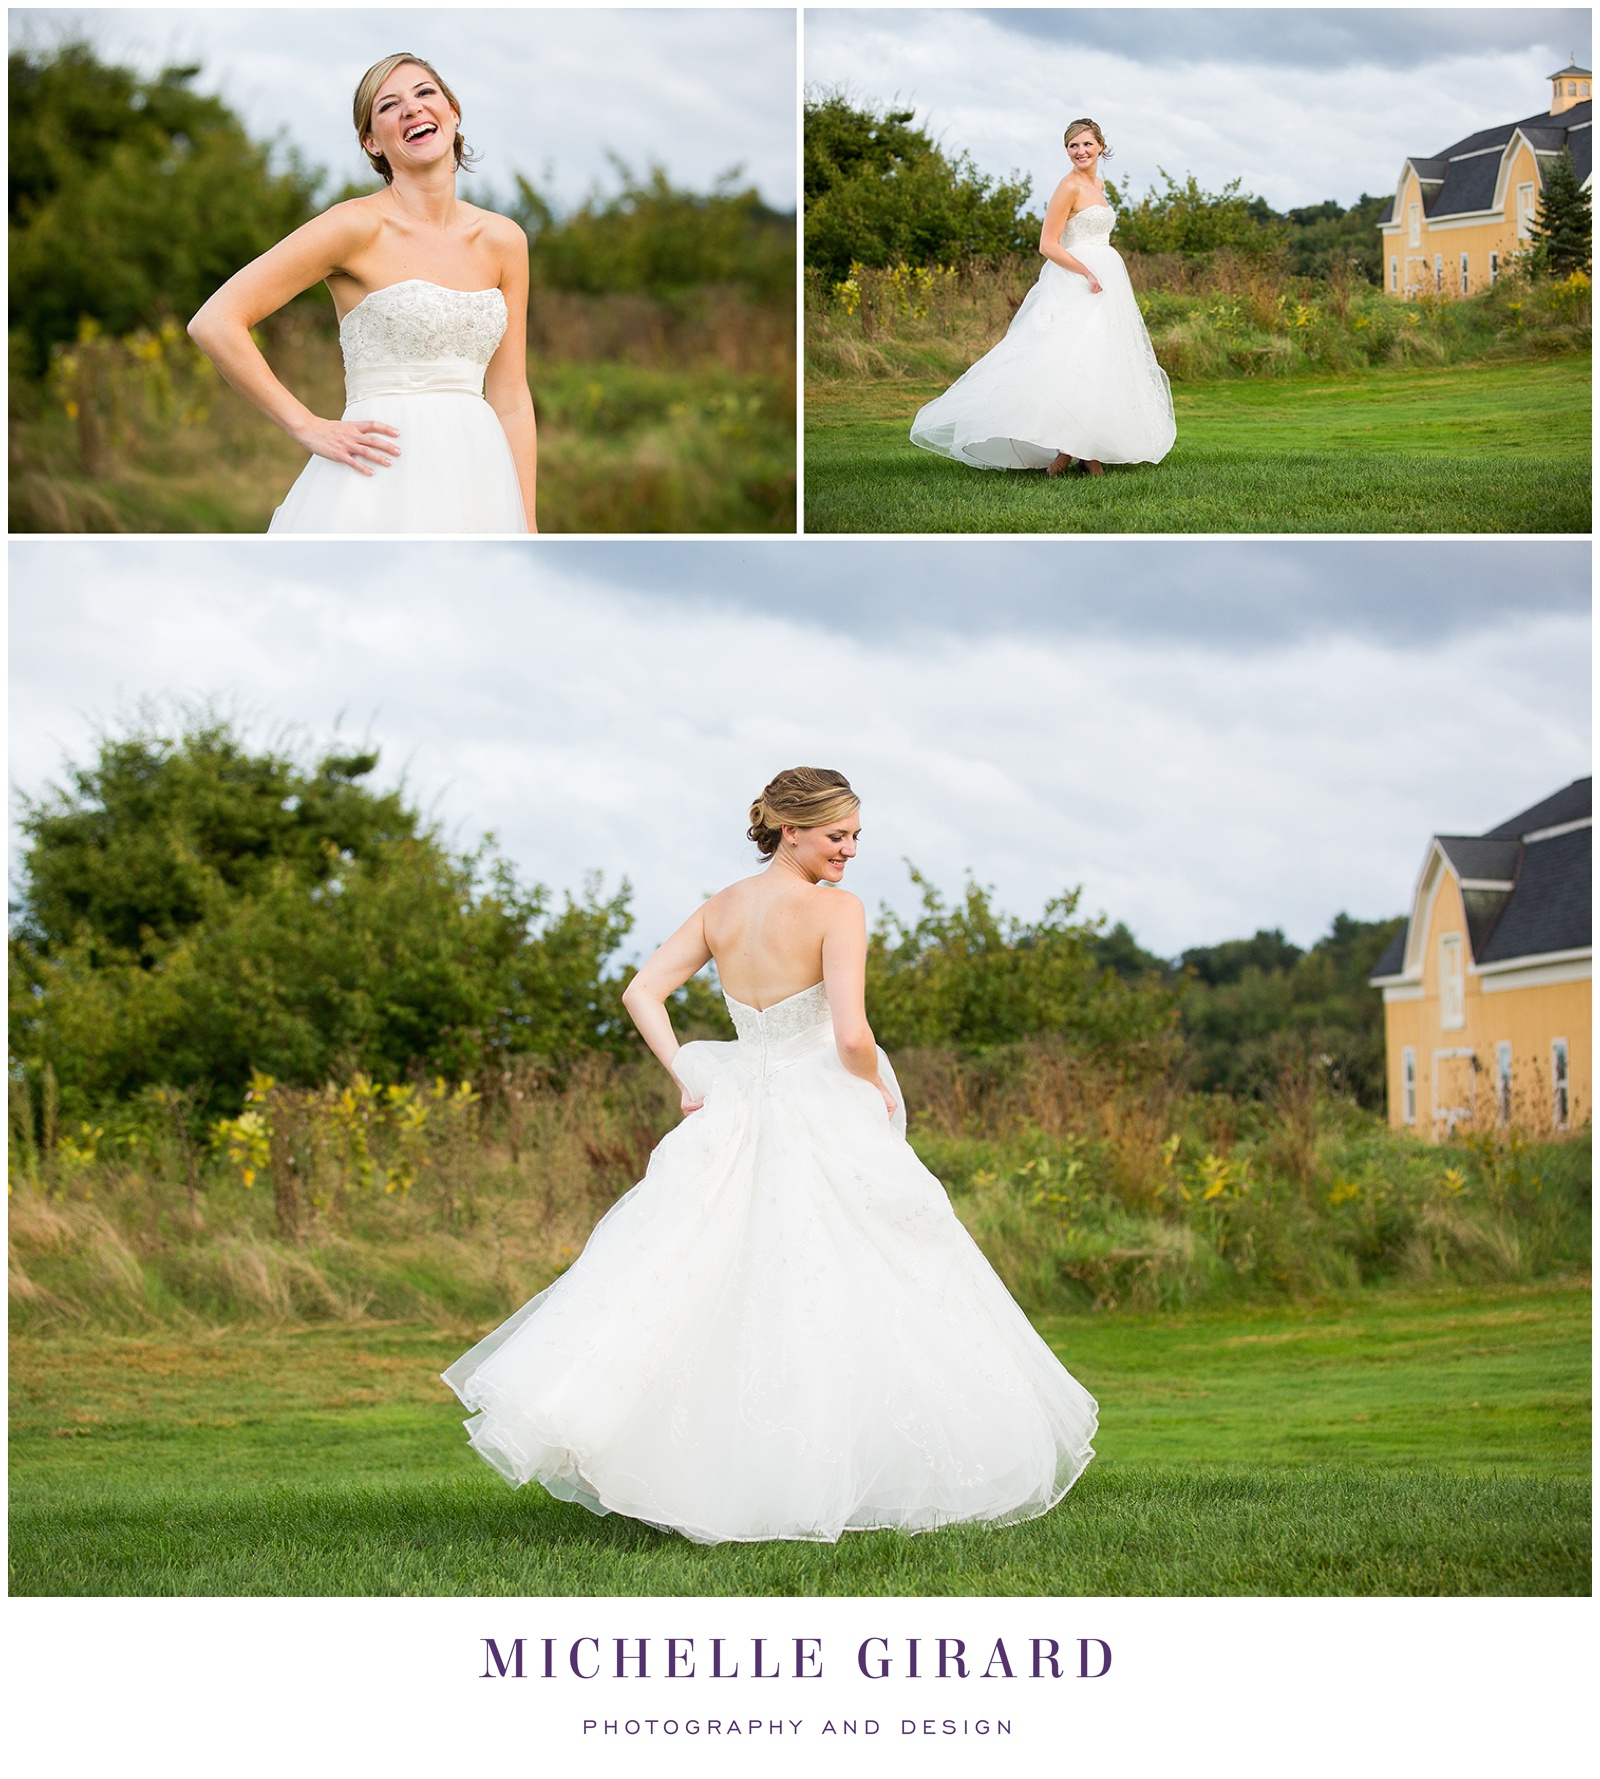 TheRanch_RusticFallWedding_MichelleGirardPhotography08.jpg